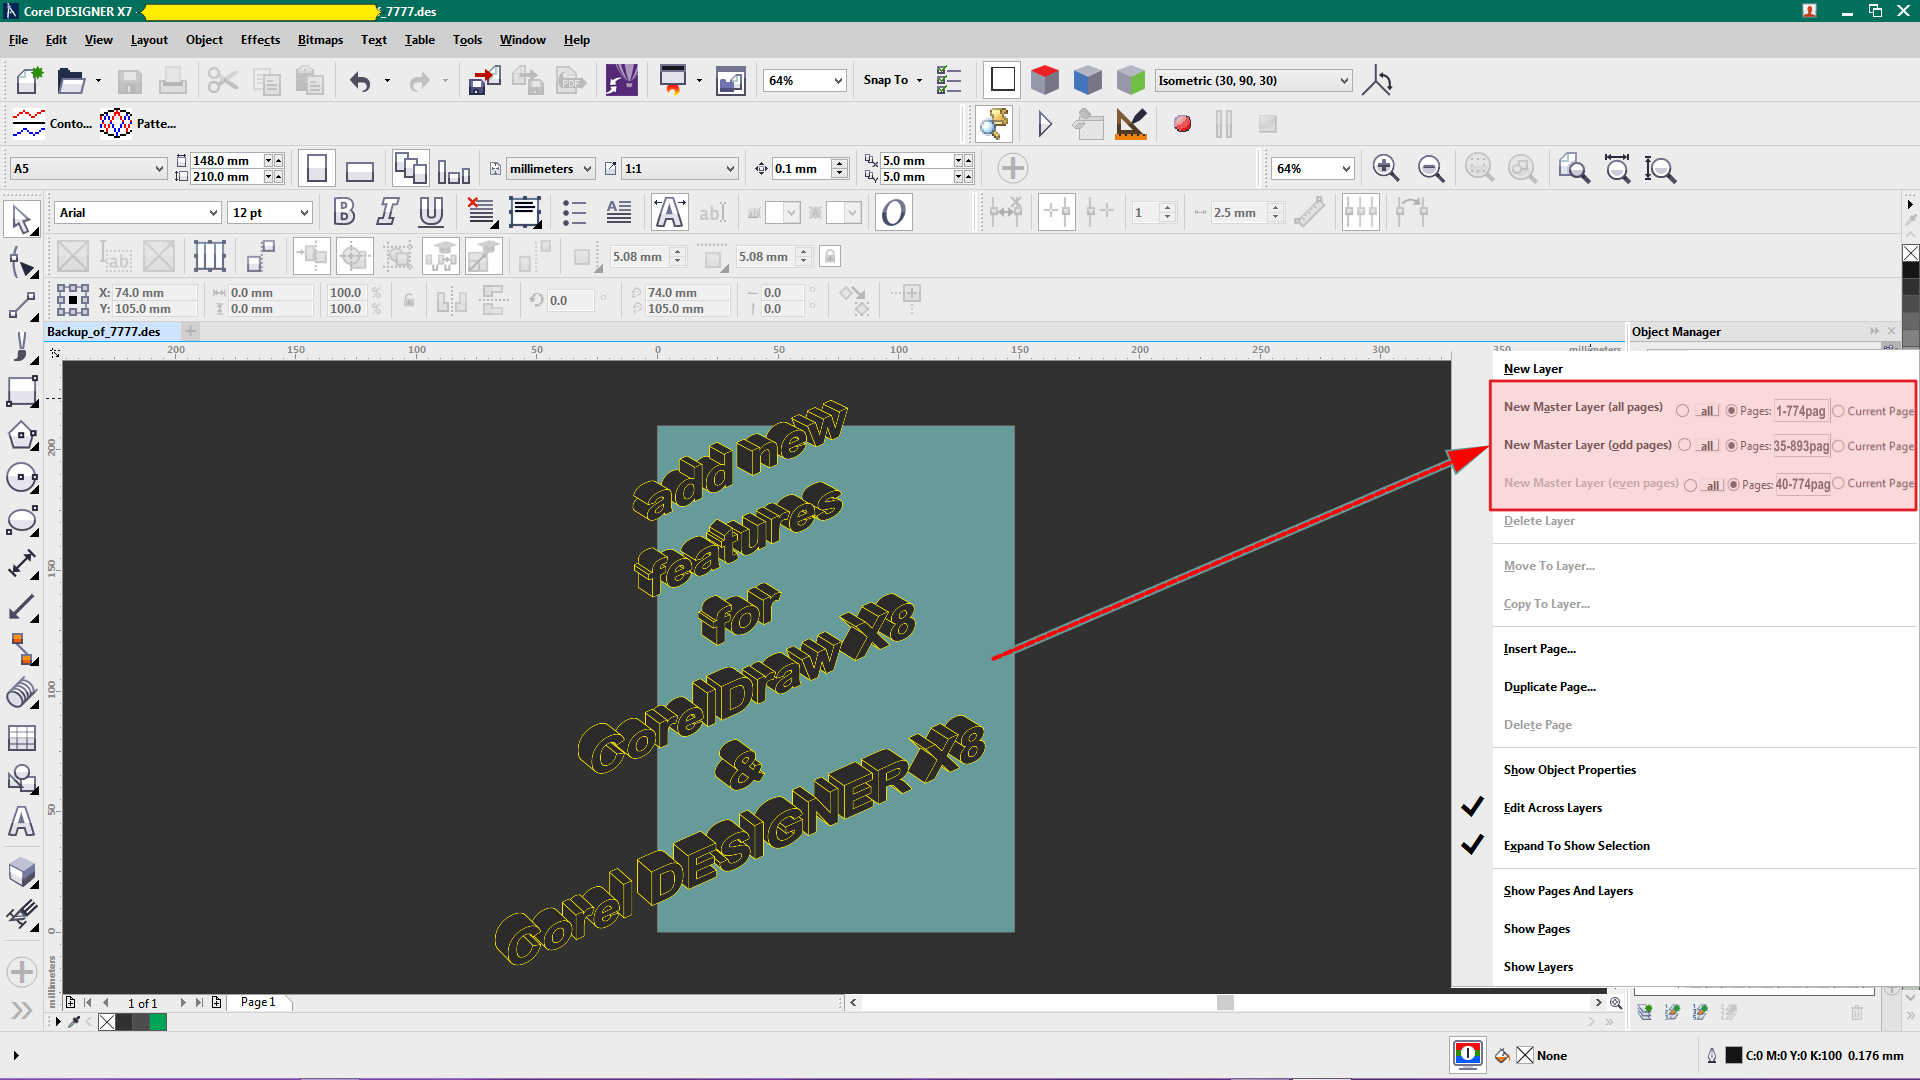 Macros for coreldraw x8 - Request A New Feature Of The Program Corel Draw X8 And Corel Designer X8 Program